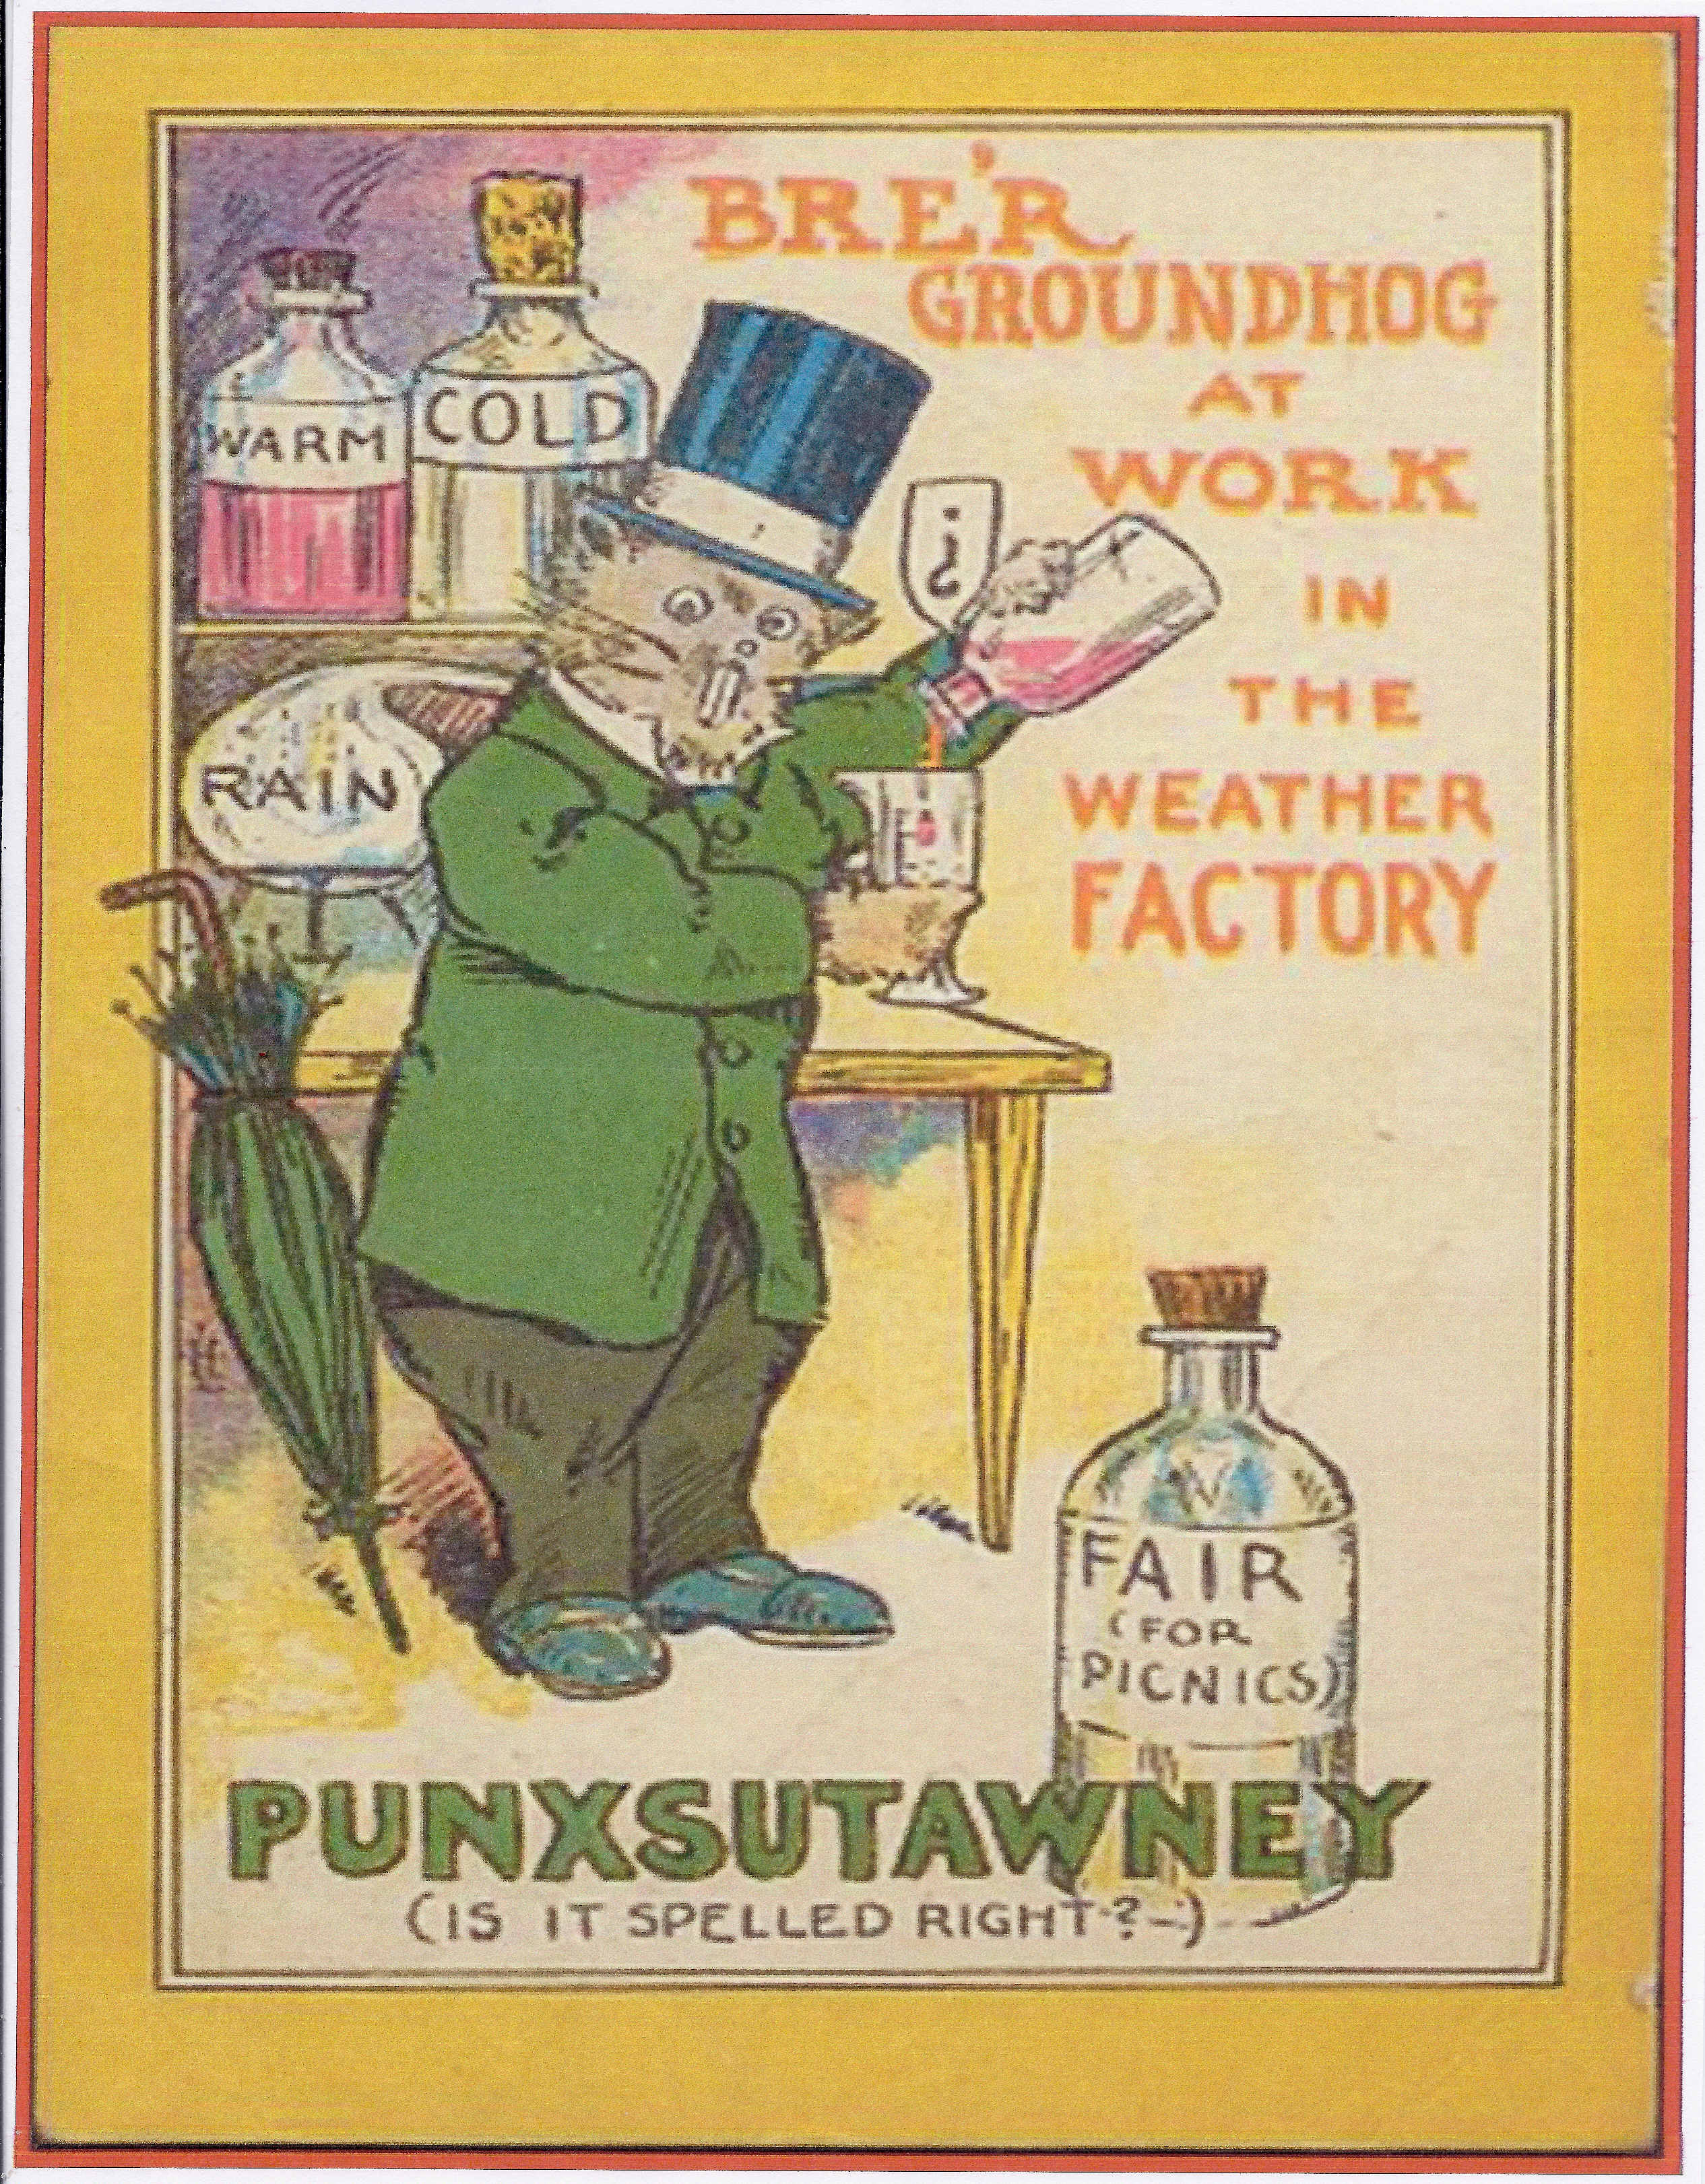 Here's the Punxsutawney groundhog, busy prognosticating the weather back in 1911.